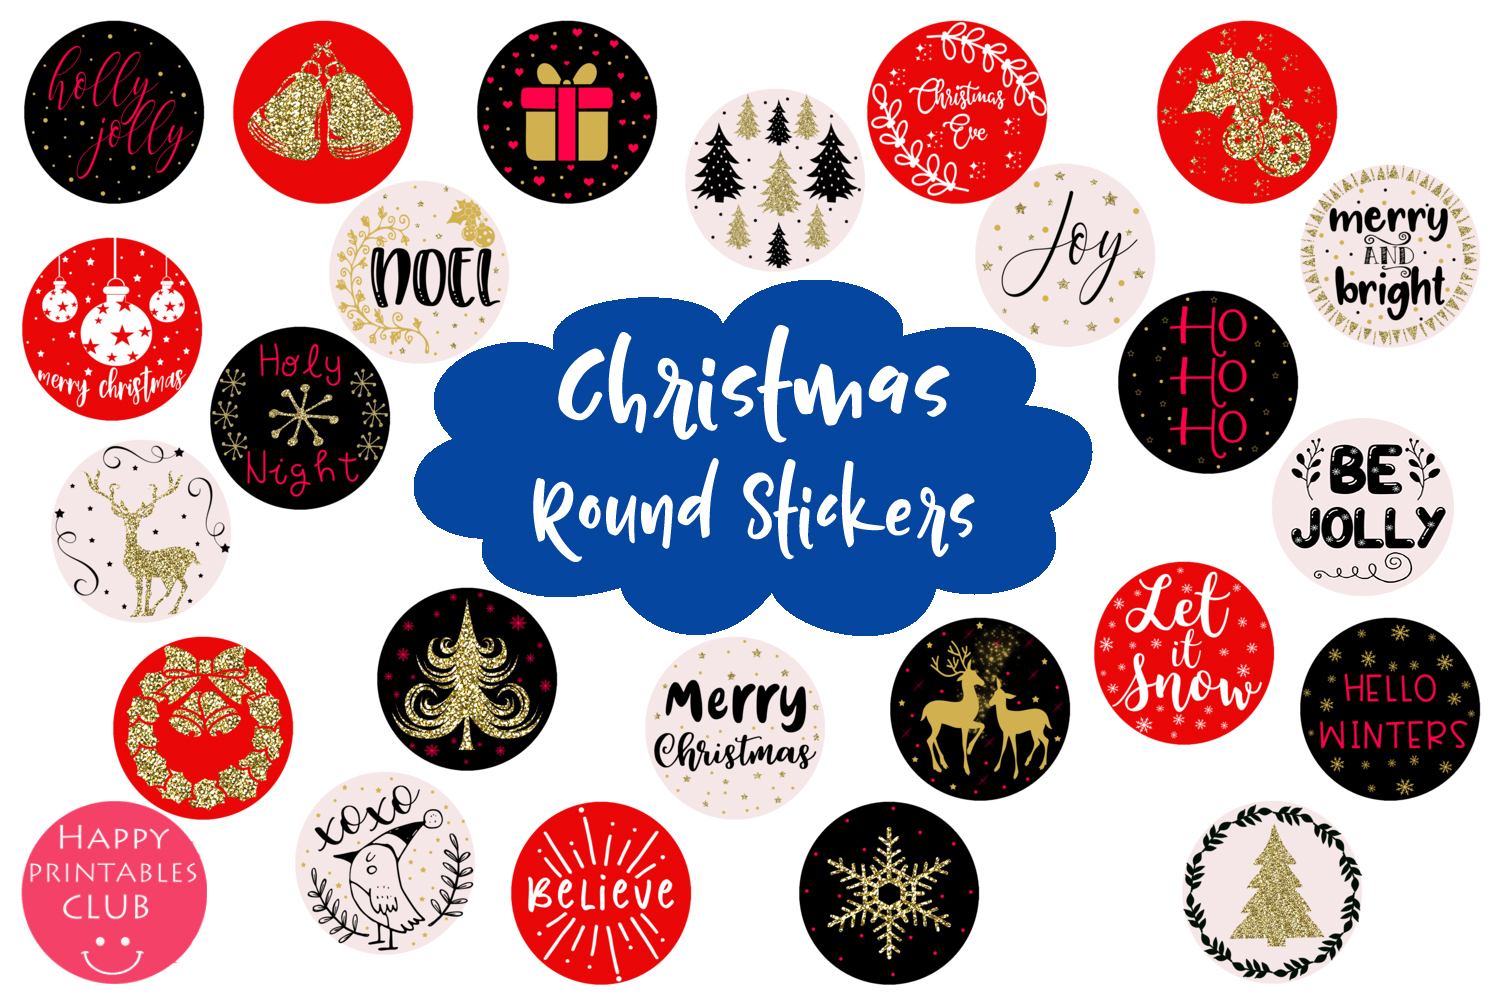 Cute Christmas Round Stickers- Holiday Round Stickers example image 1